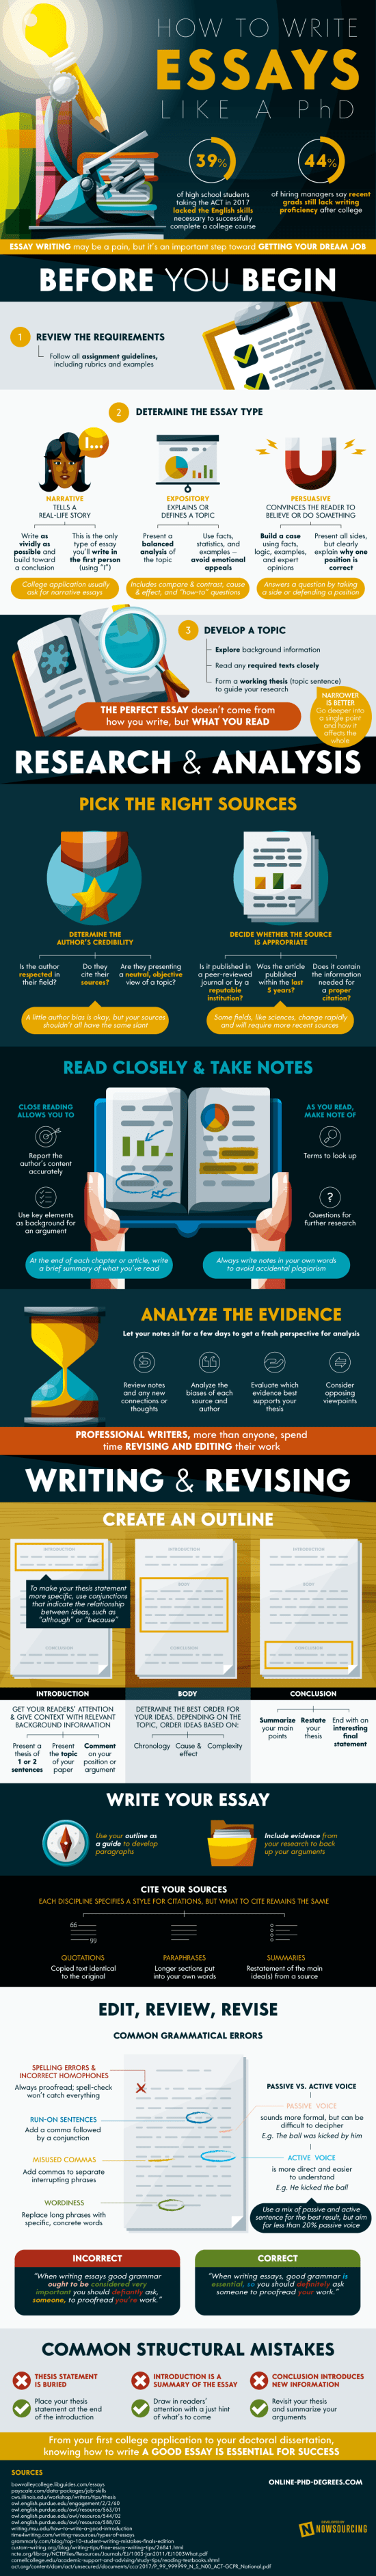 How To Write An Essay [Infographic] 1